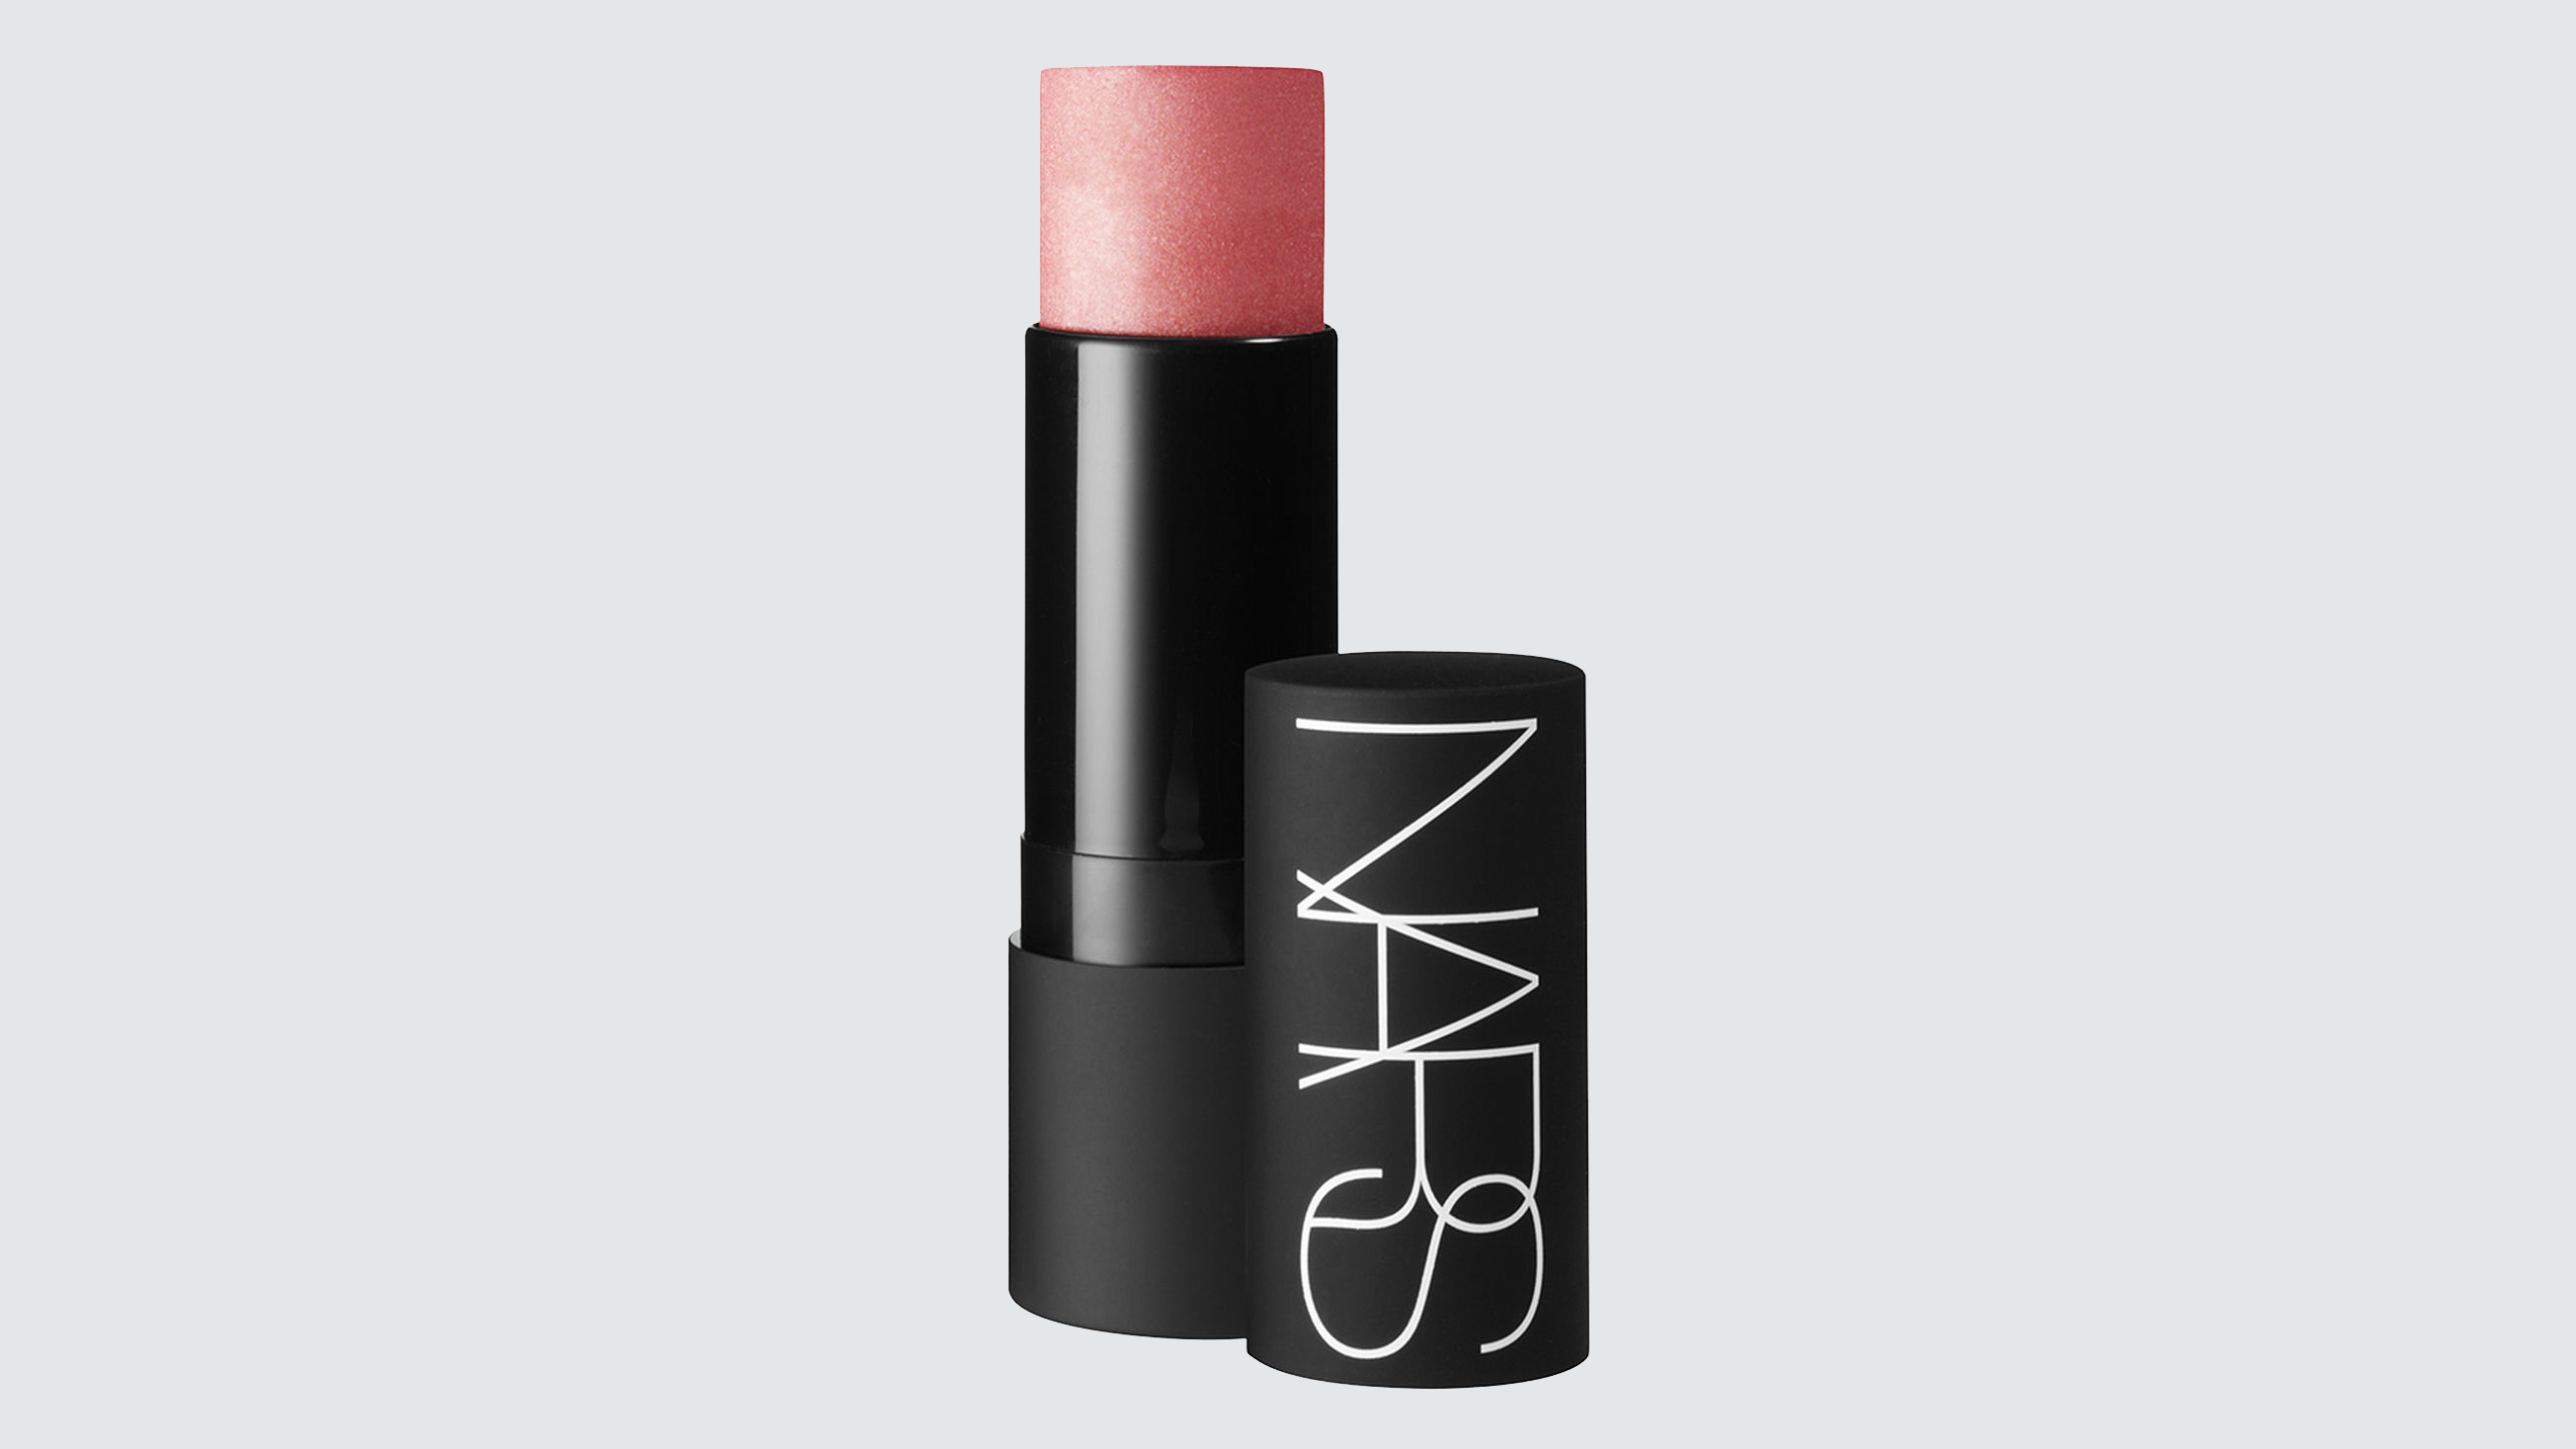 NARS The Multiple face product